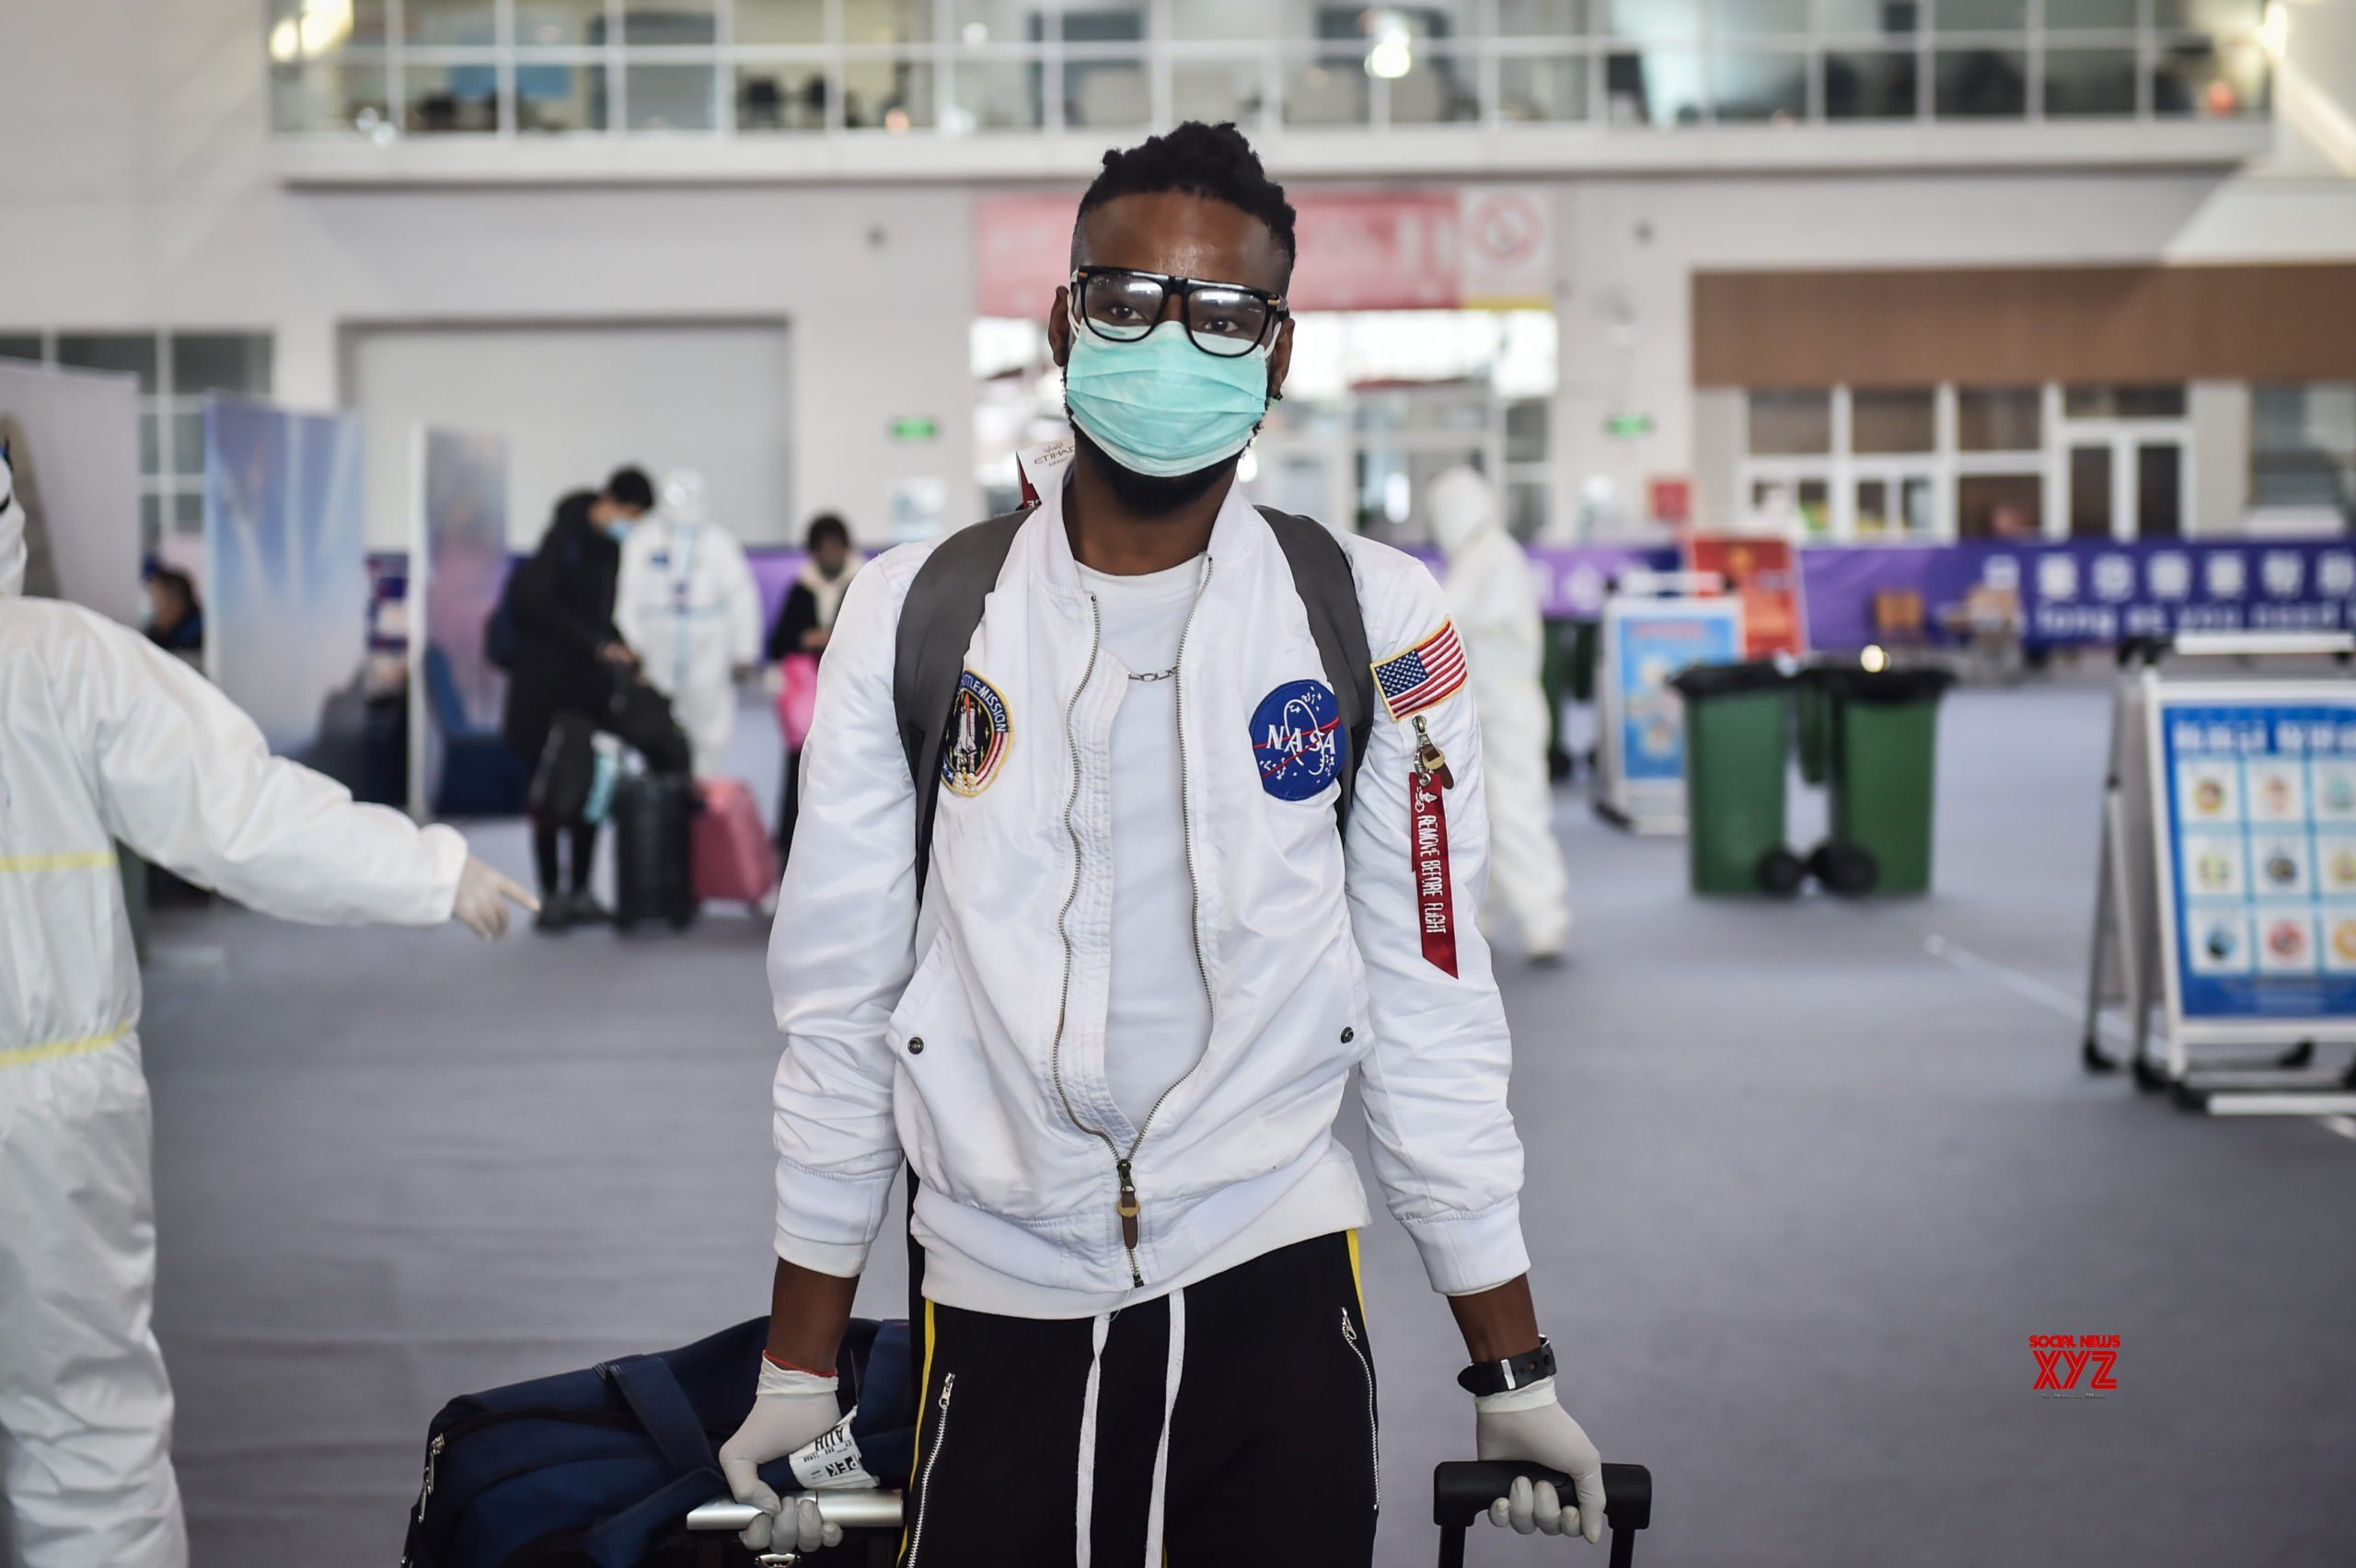 17 airport workers test Covid positive in China